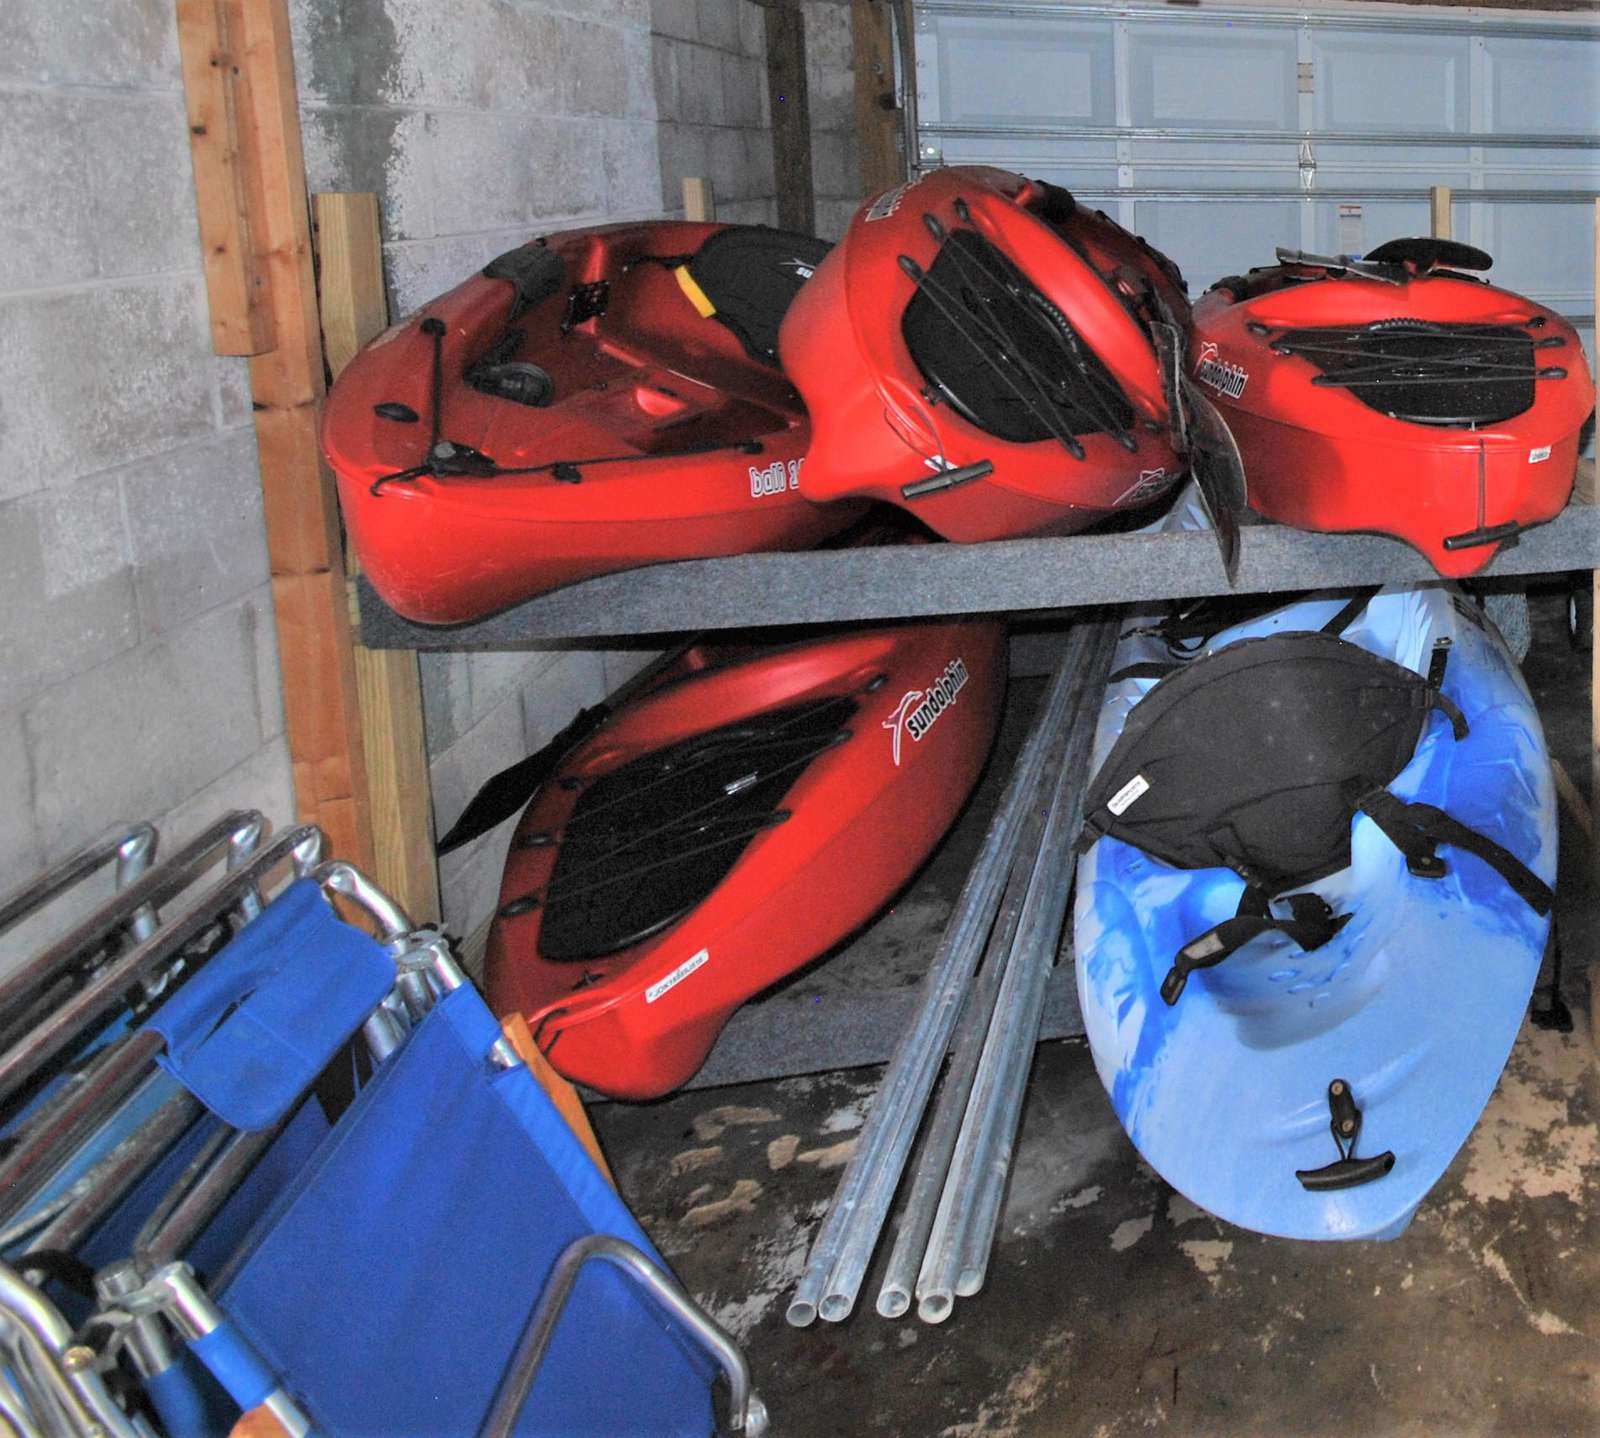 Kayaks for our guest to use and enjoy